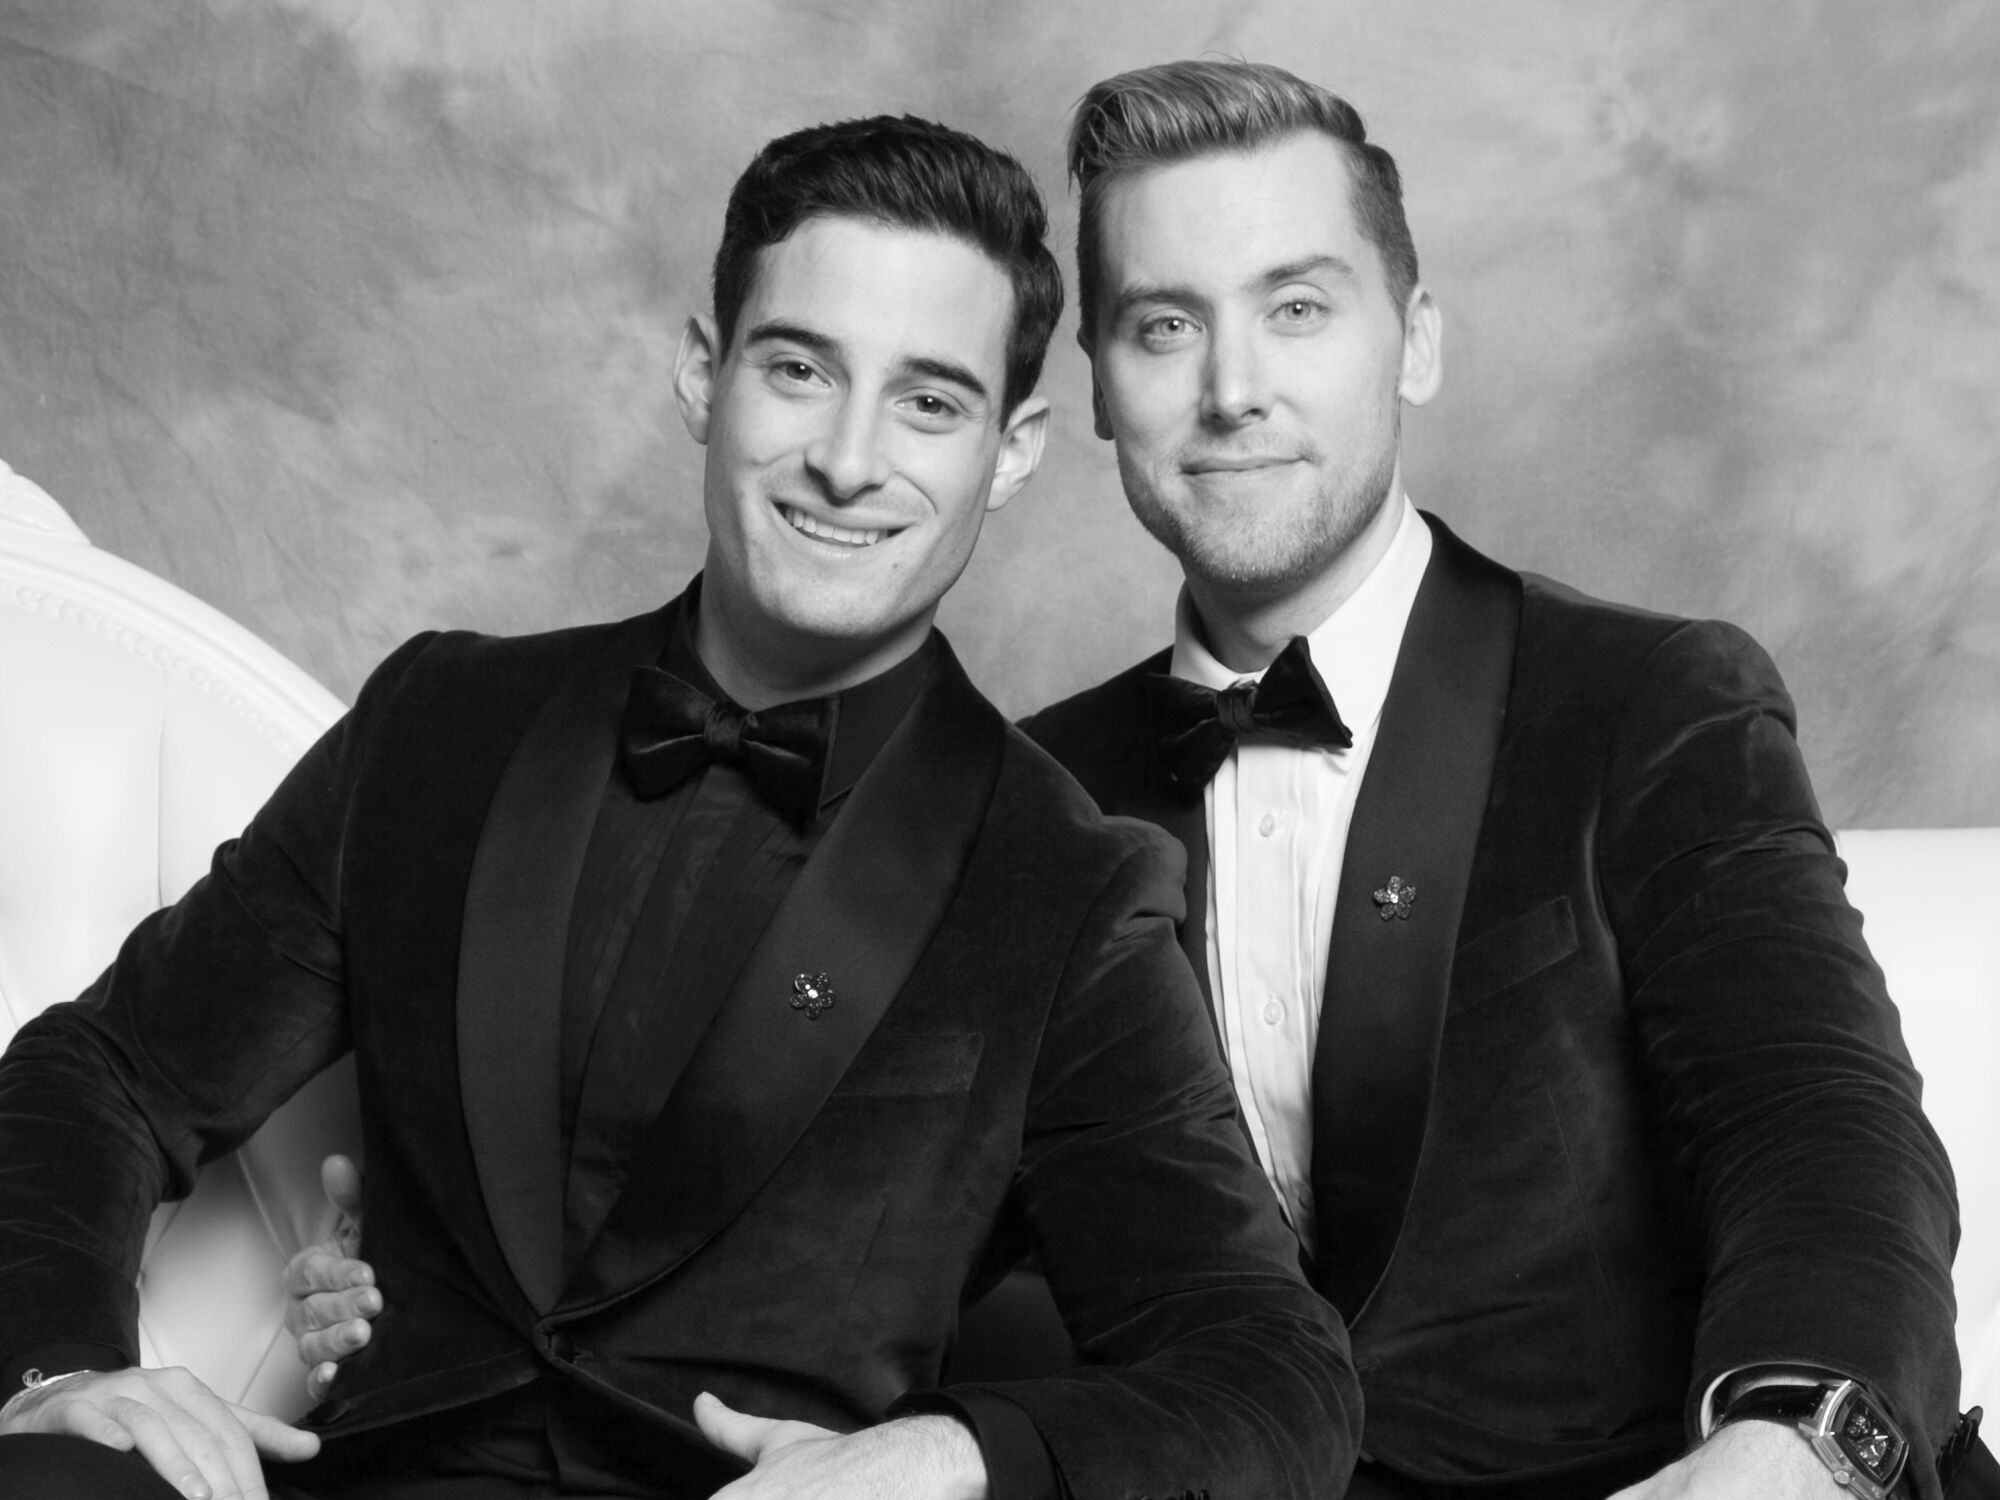 lesbian wedding coloring pages | Did You See These Photos of Lance Bass and Michael Turchin ...